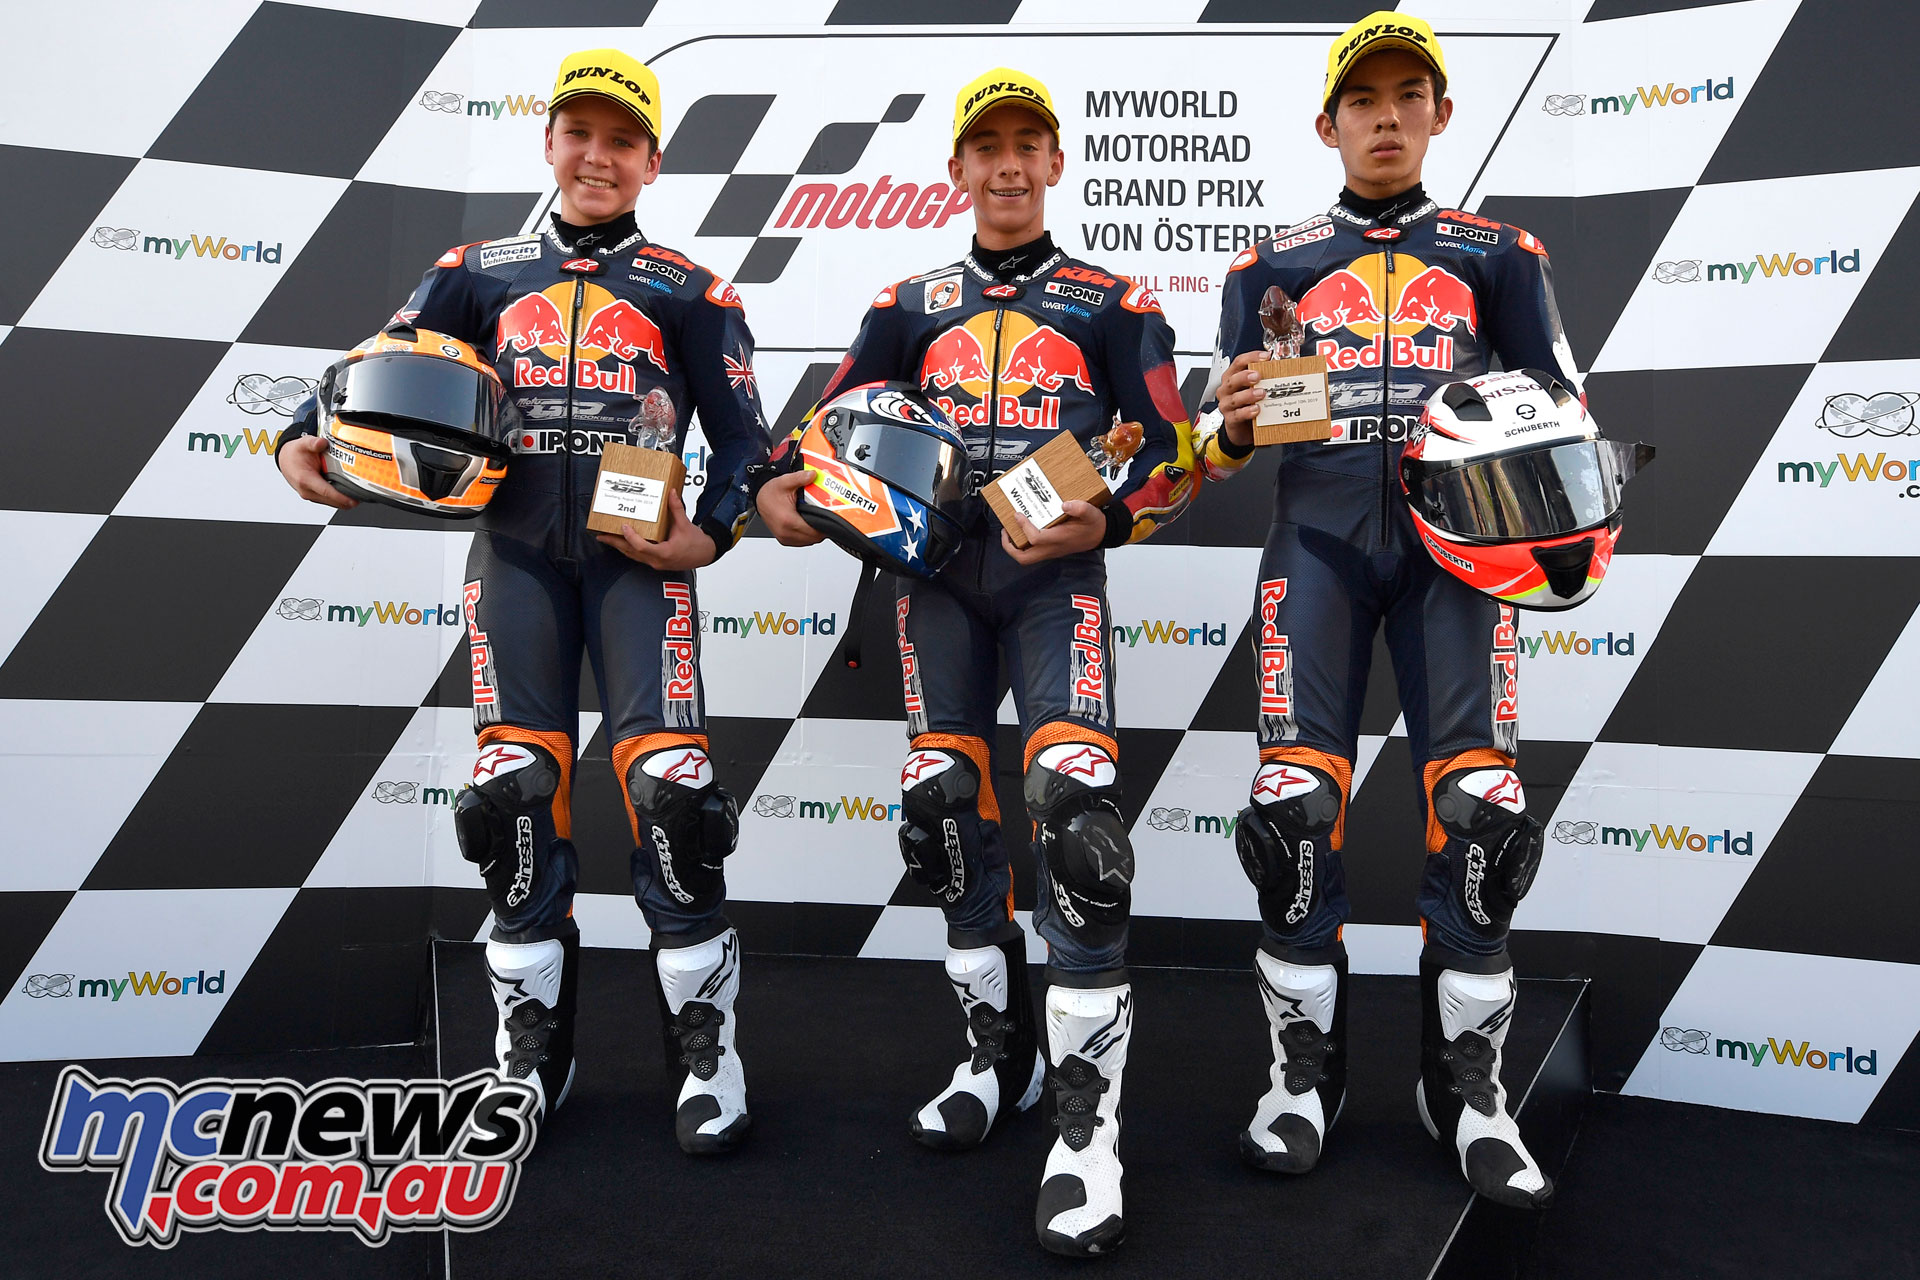 Red Bull Rookies Cup Rnd Austria Race Podium